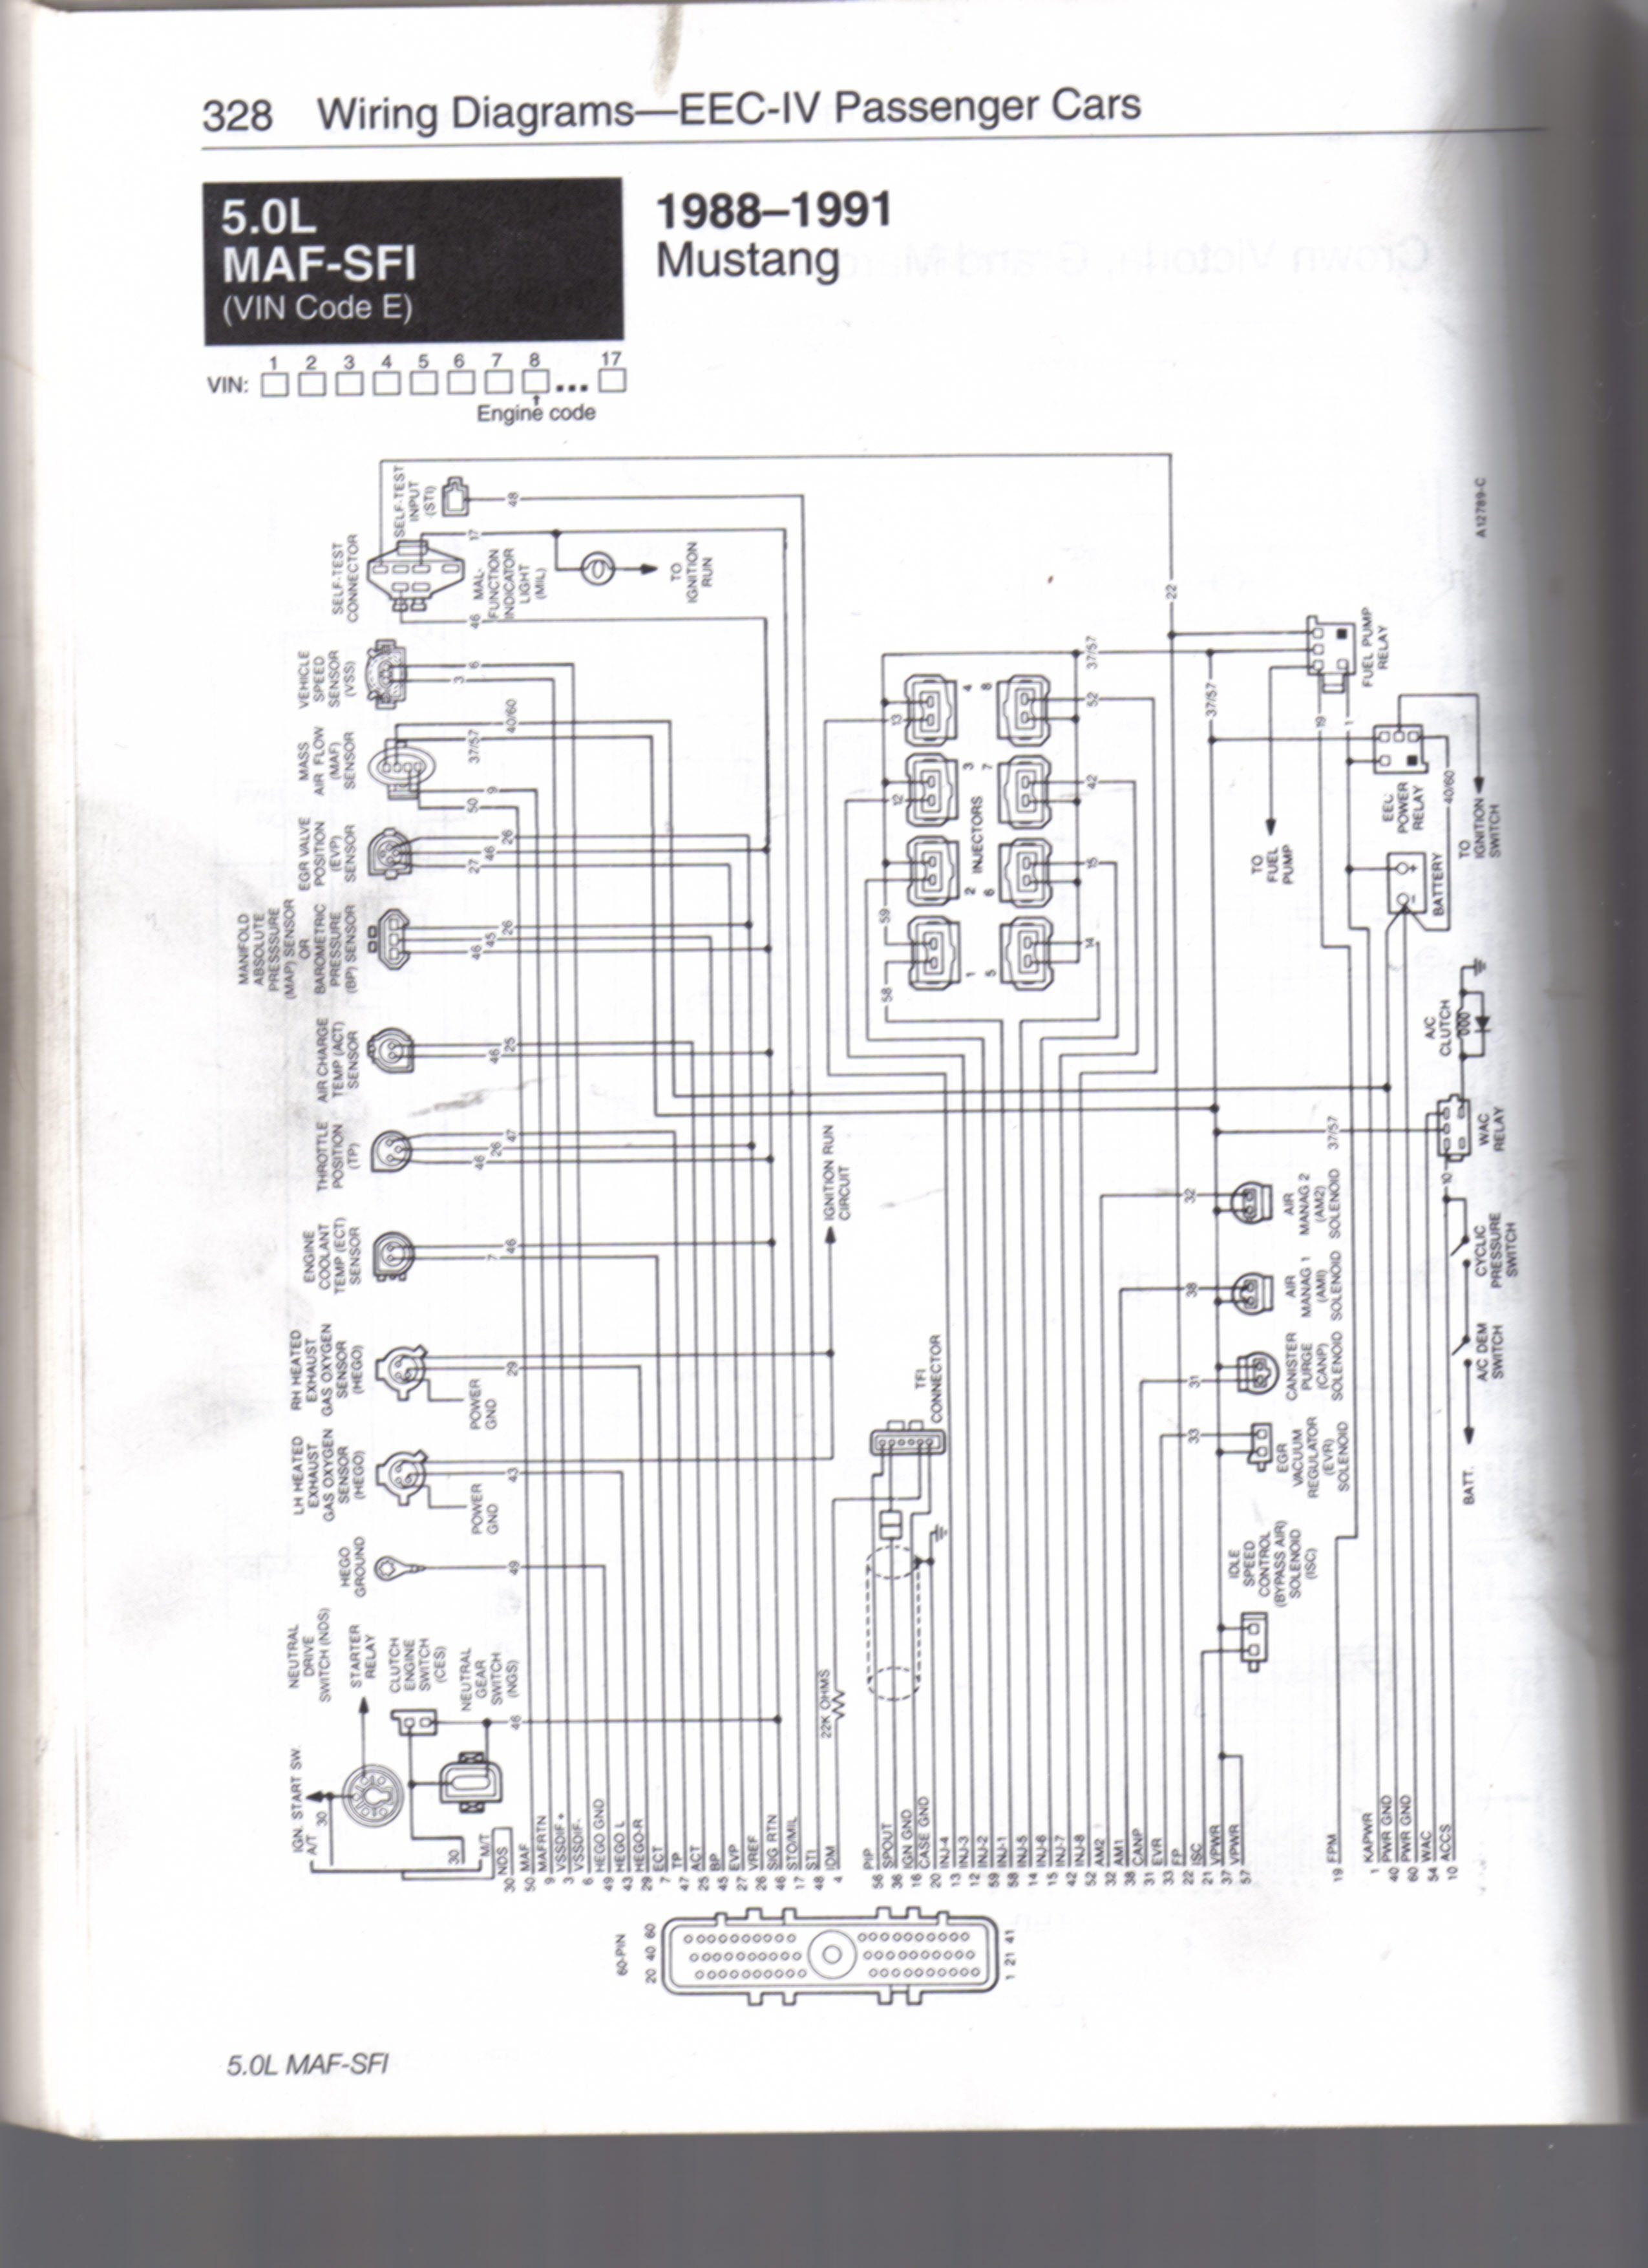 Mustang Lx Converting To 5 0 And Need Wiring